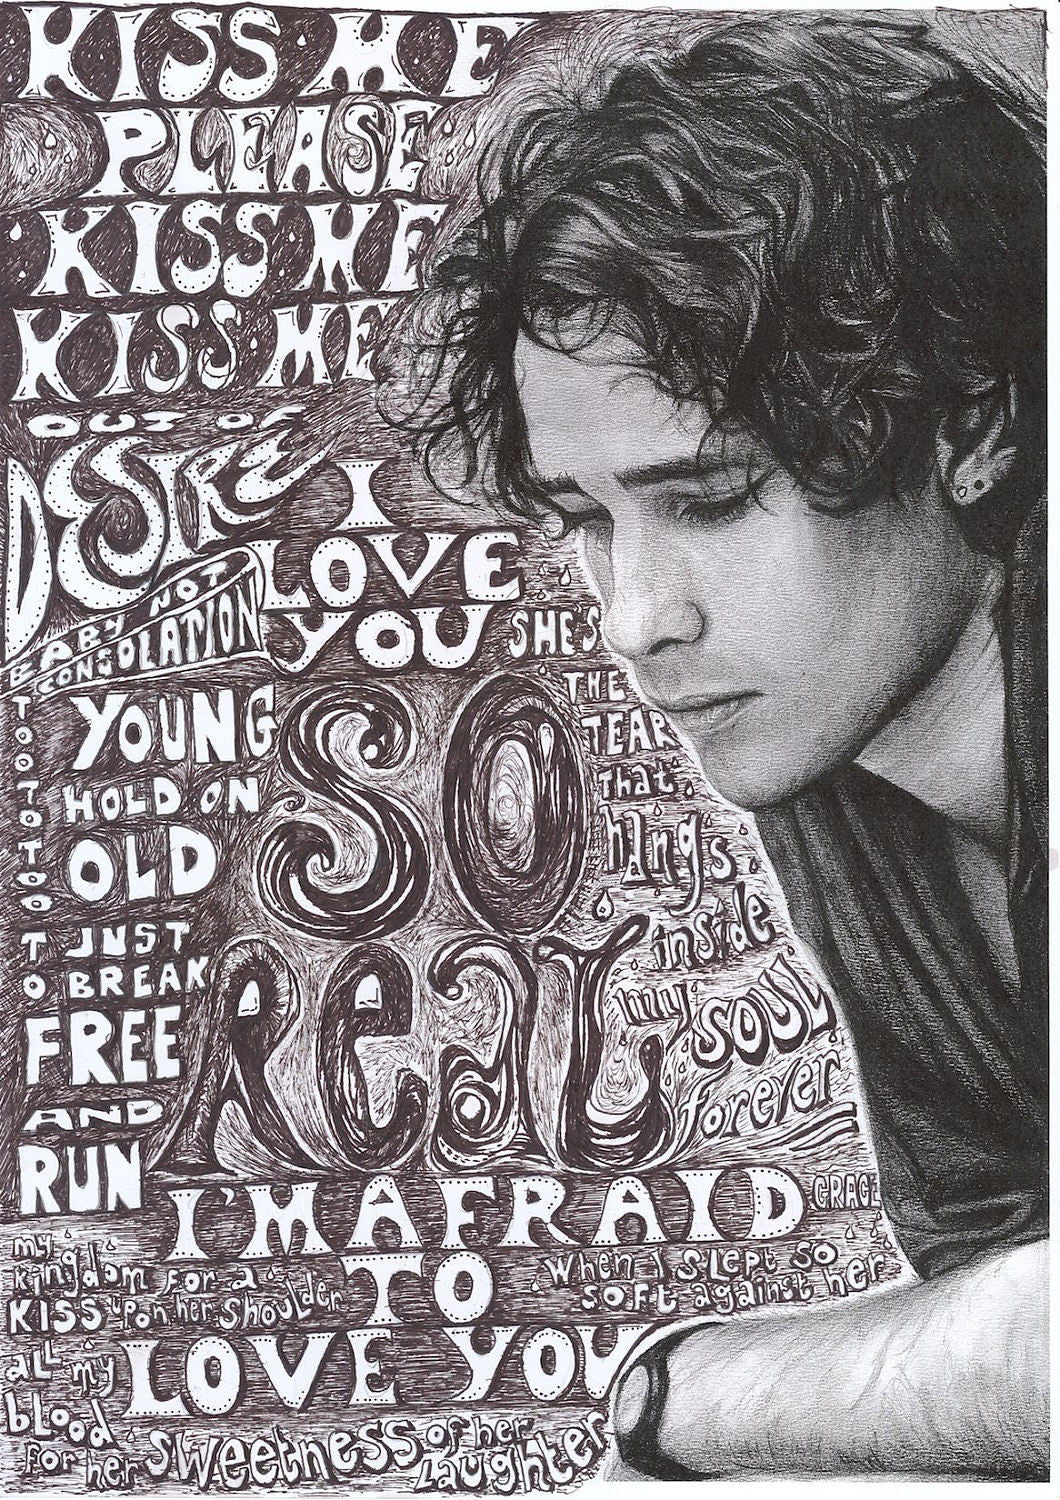 Jeff Buckley charcoal portrait drawing and illustration including lyrics from Grace tribute fan art wall decor print